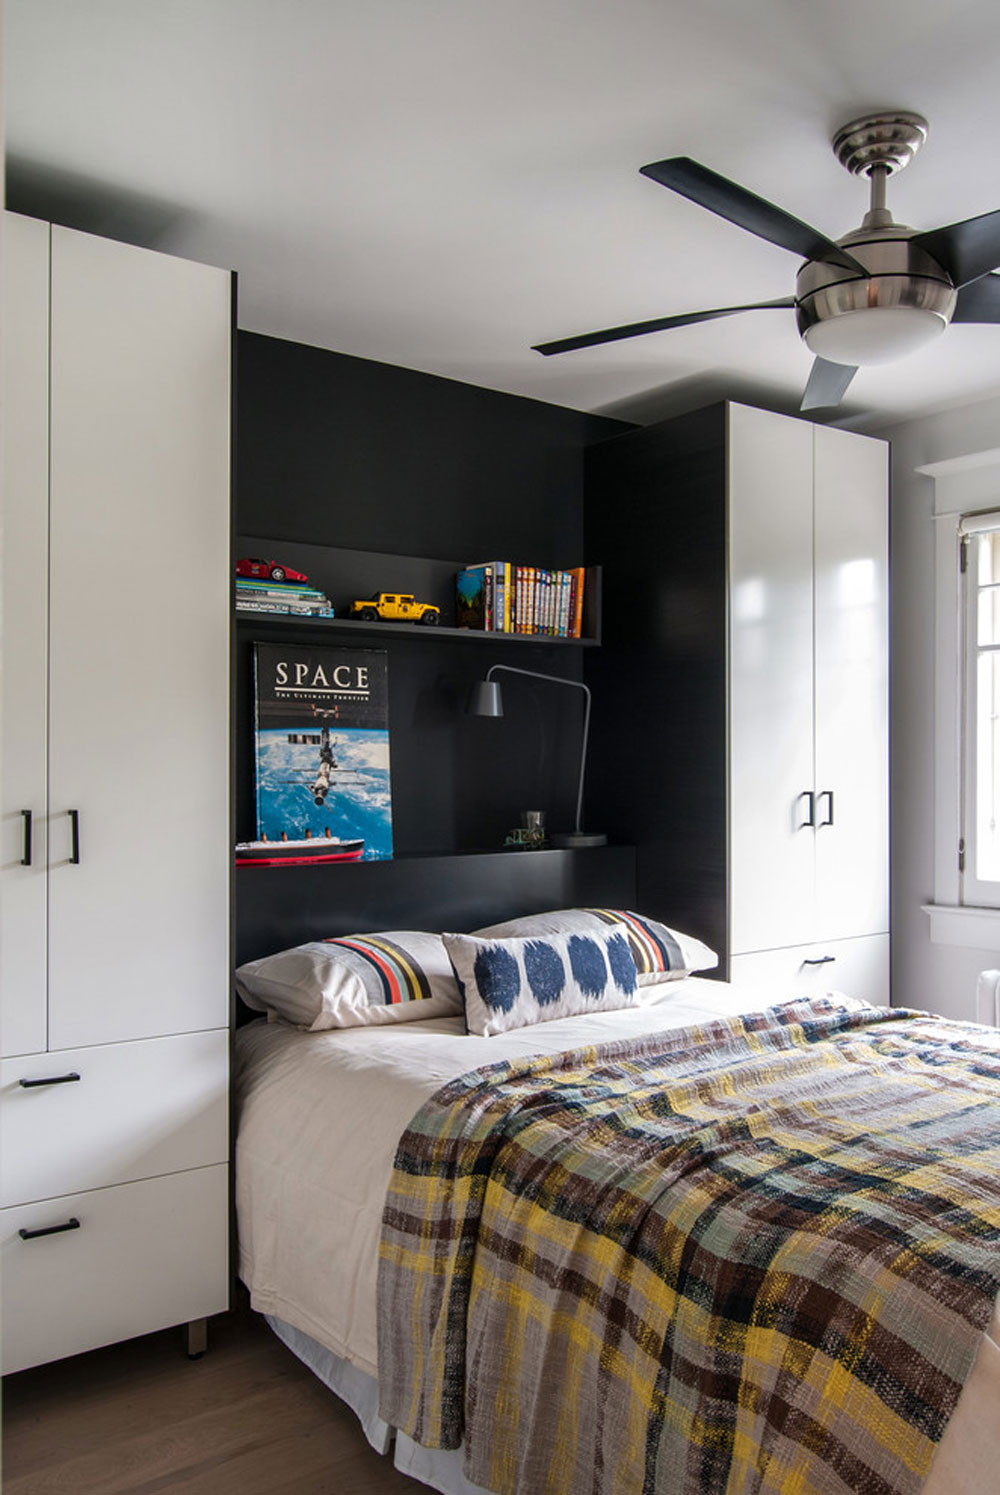 Design Tips for Decorating a Small Bedroom on a Budget 11 design tips for decorating a small bedroom on a budget